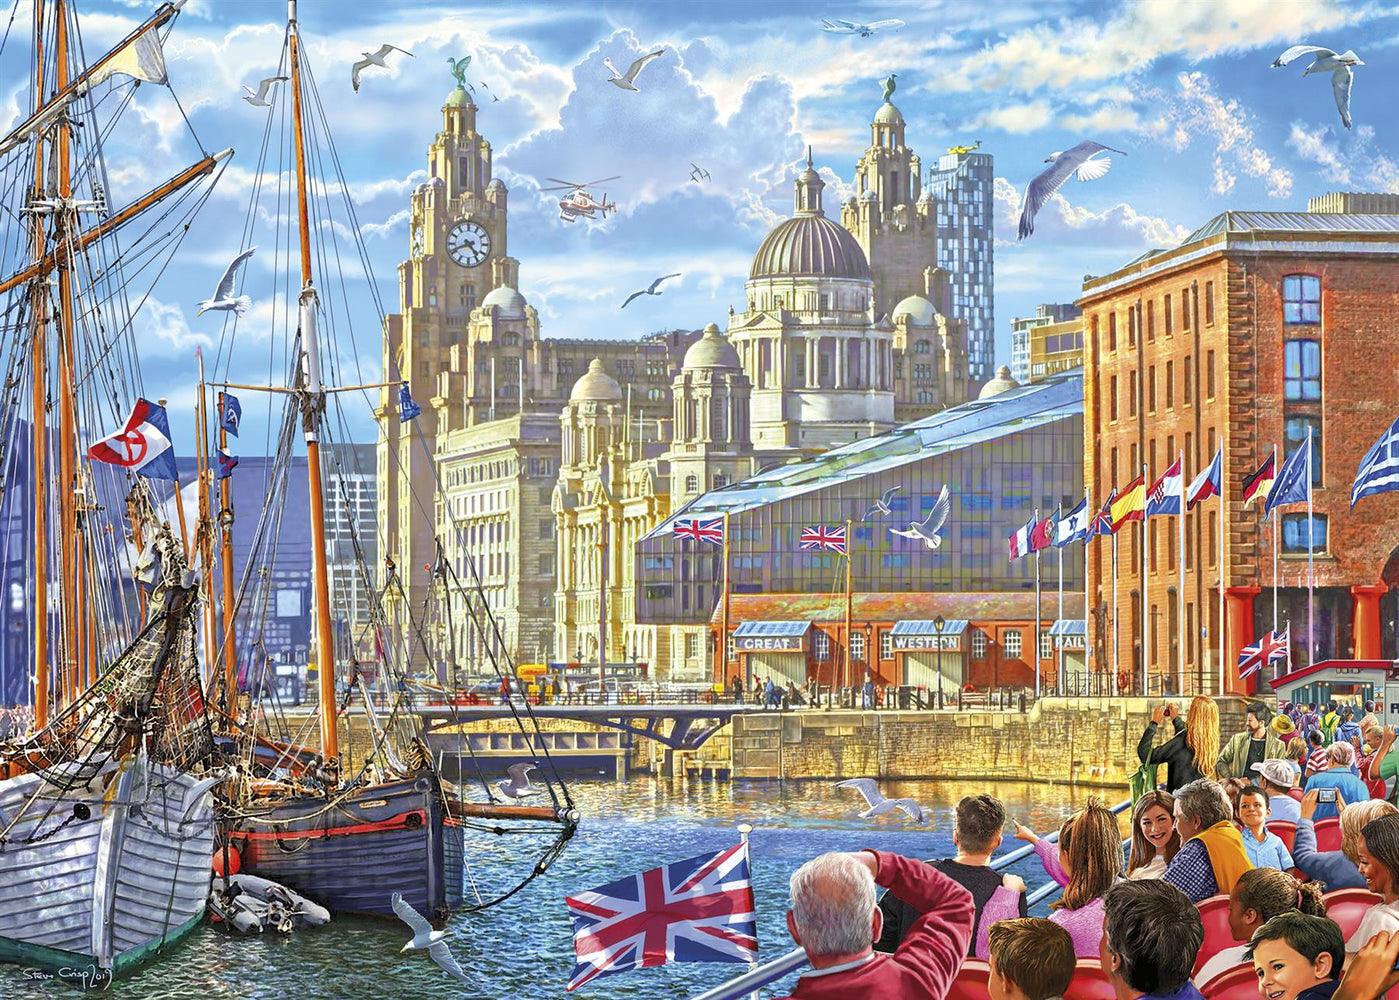 Albert Dock, Liverpool 1000 Piece Jigsaw Puzzle